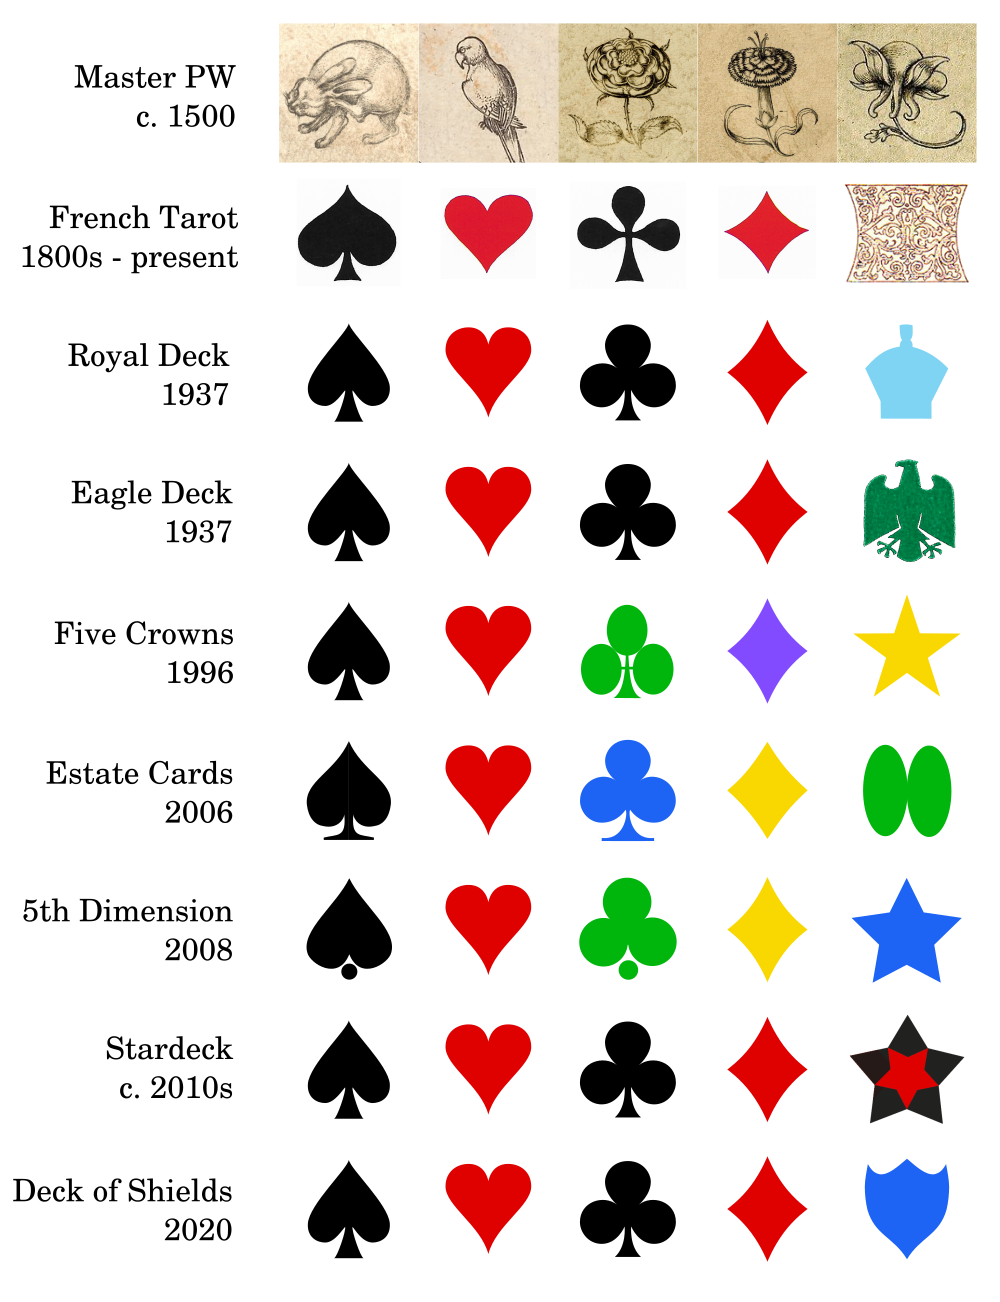 History of decks of playing cards with five suits